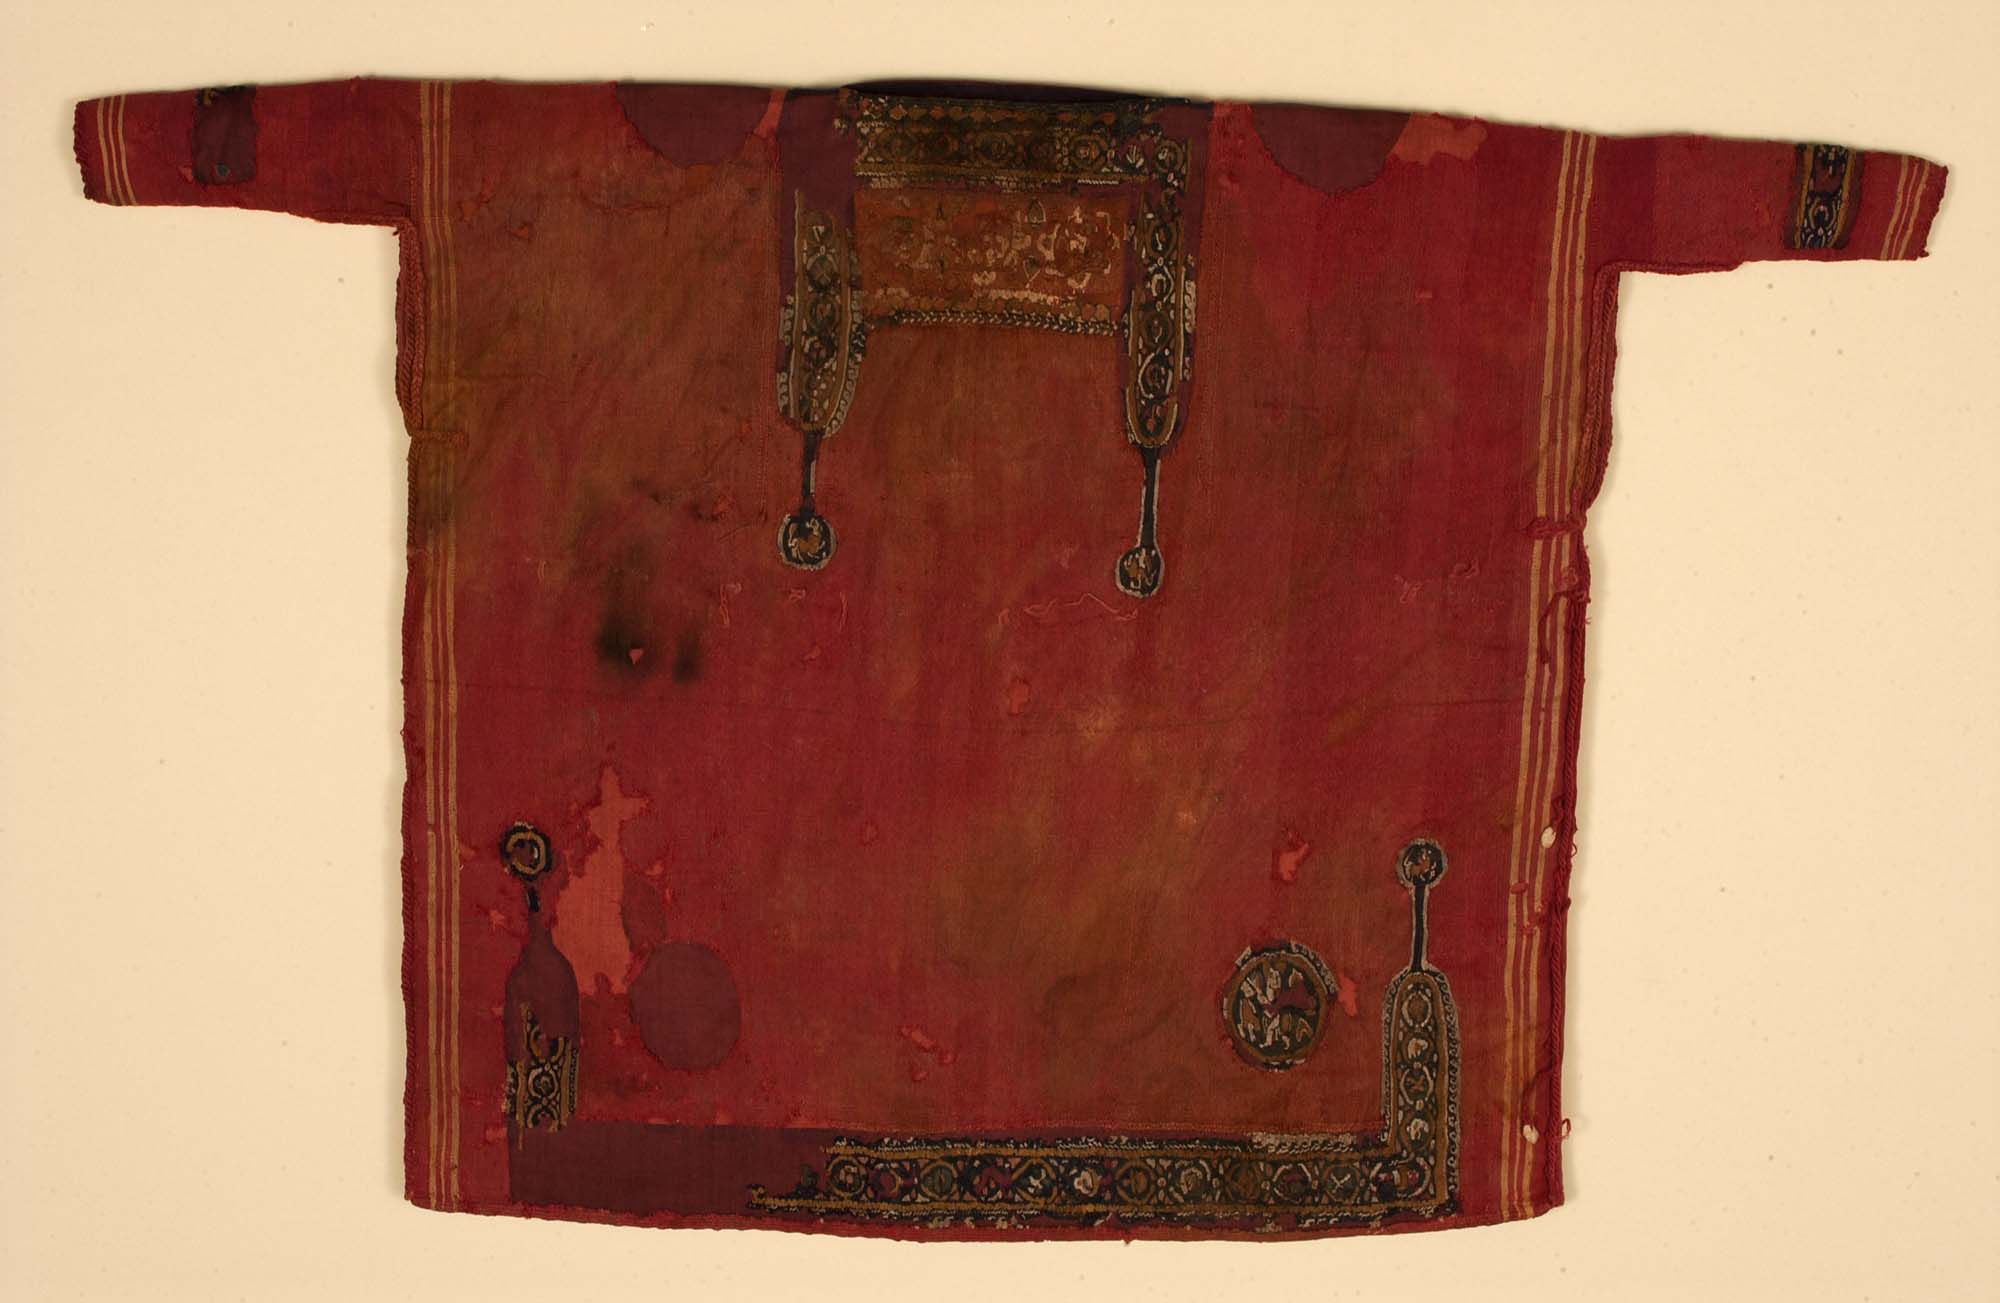 a photo of a tunic in red with gold brocade decoration